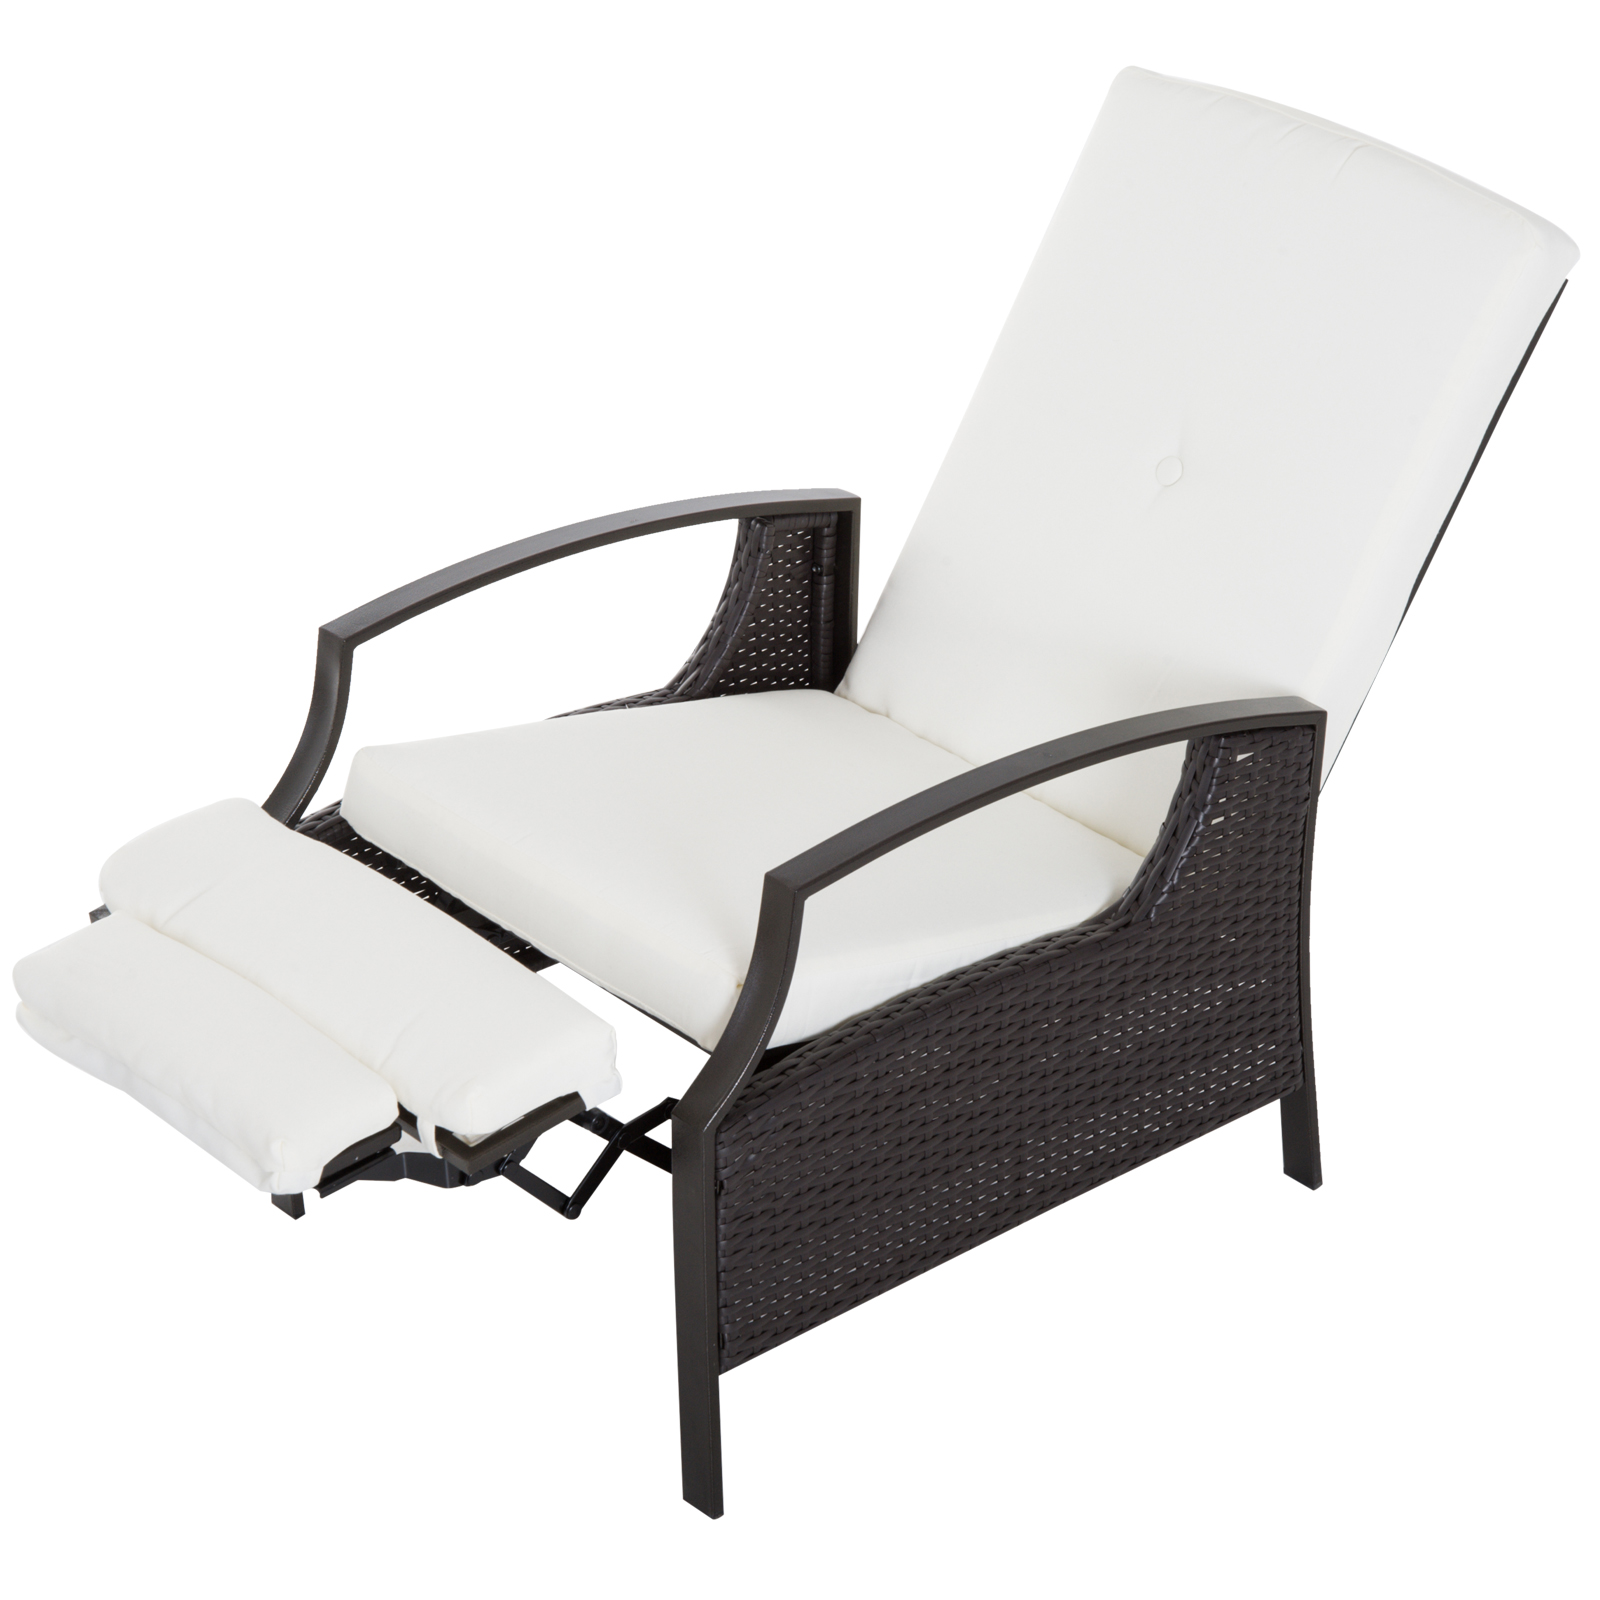 Picture of: Outsunny Adjustable Patio Wicker Recliner Chair Indoor Outdoor Garden Relaxing Lounge Chair Pool Chaise With Cushion Dark Brown Cream White Rattan Furniture Aosom